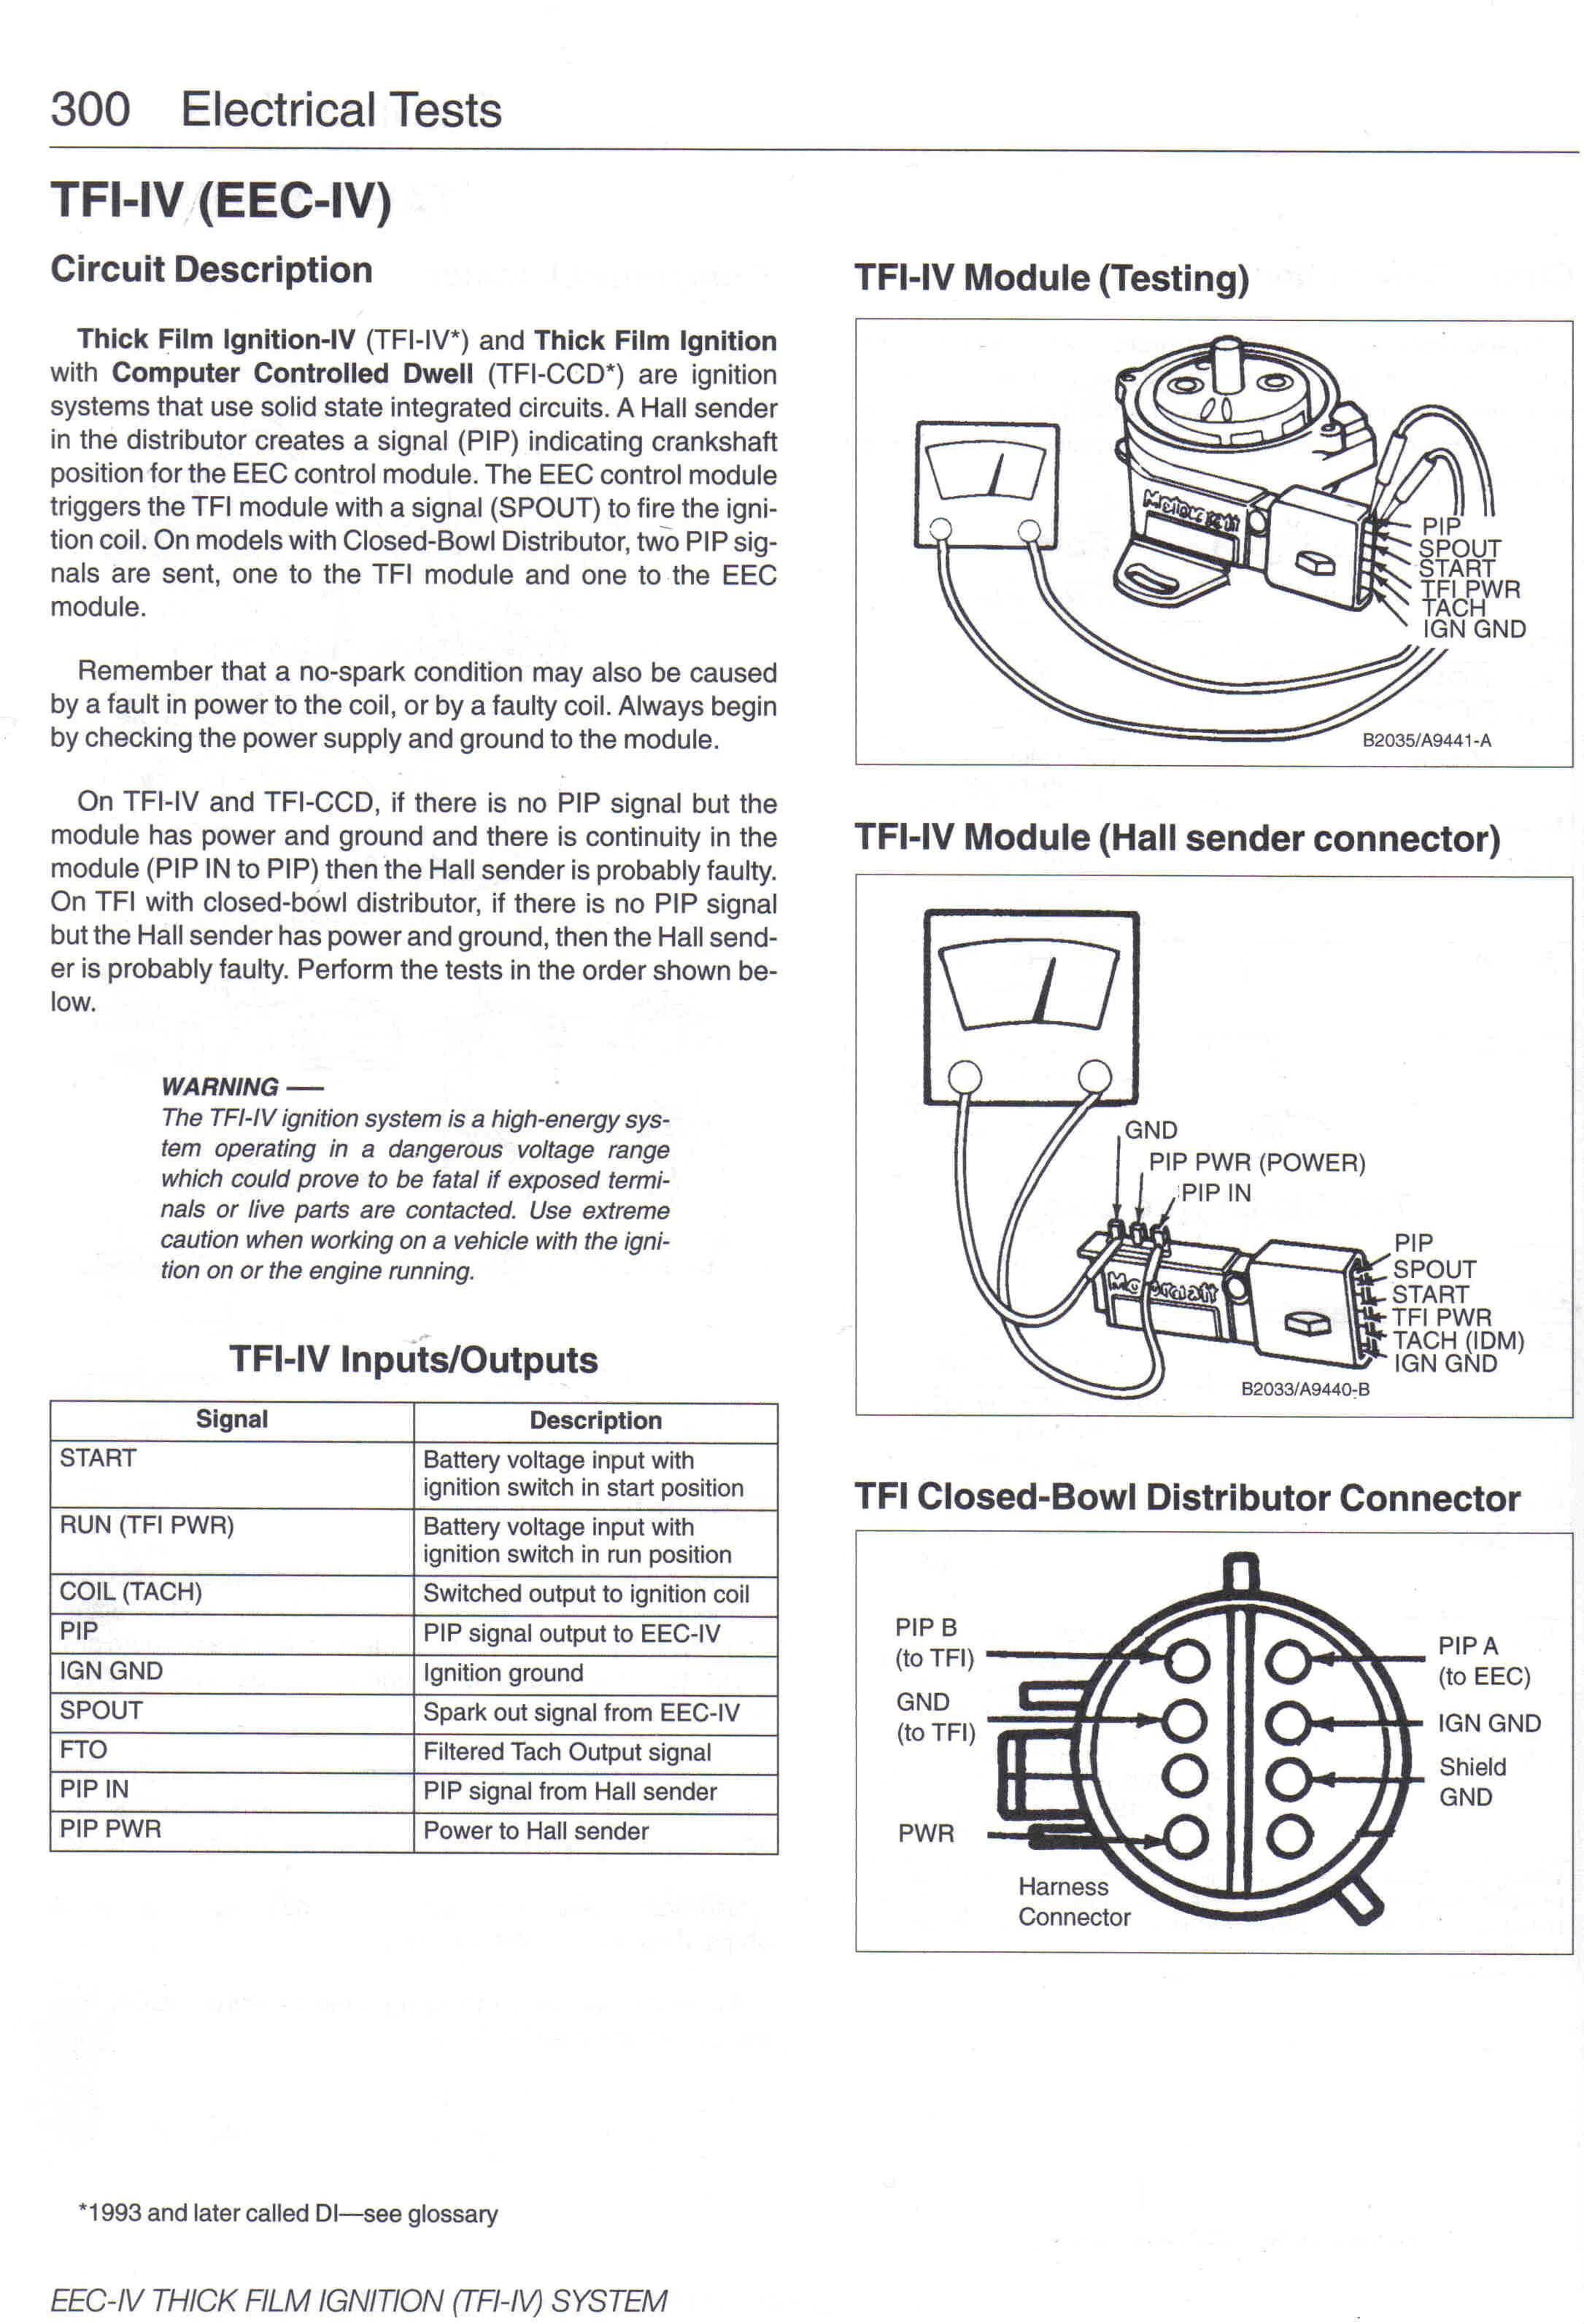 msd blaster coil wiring diagram for white rodgers thermostat model 1f78 8227 ford  free